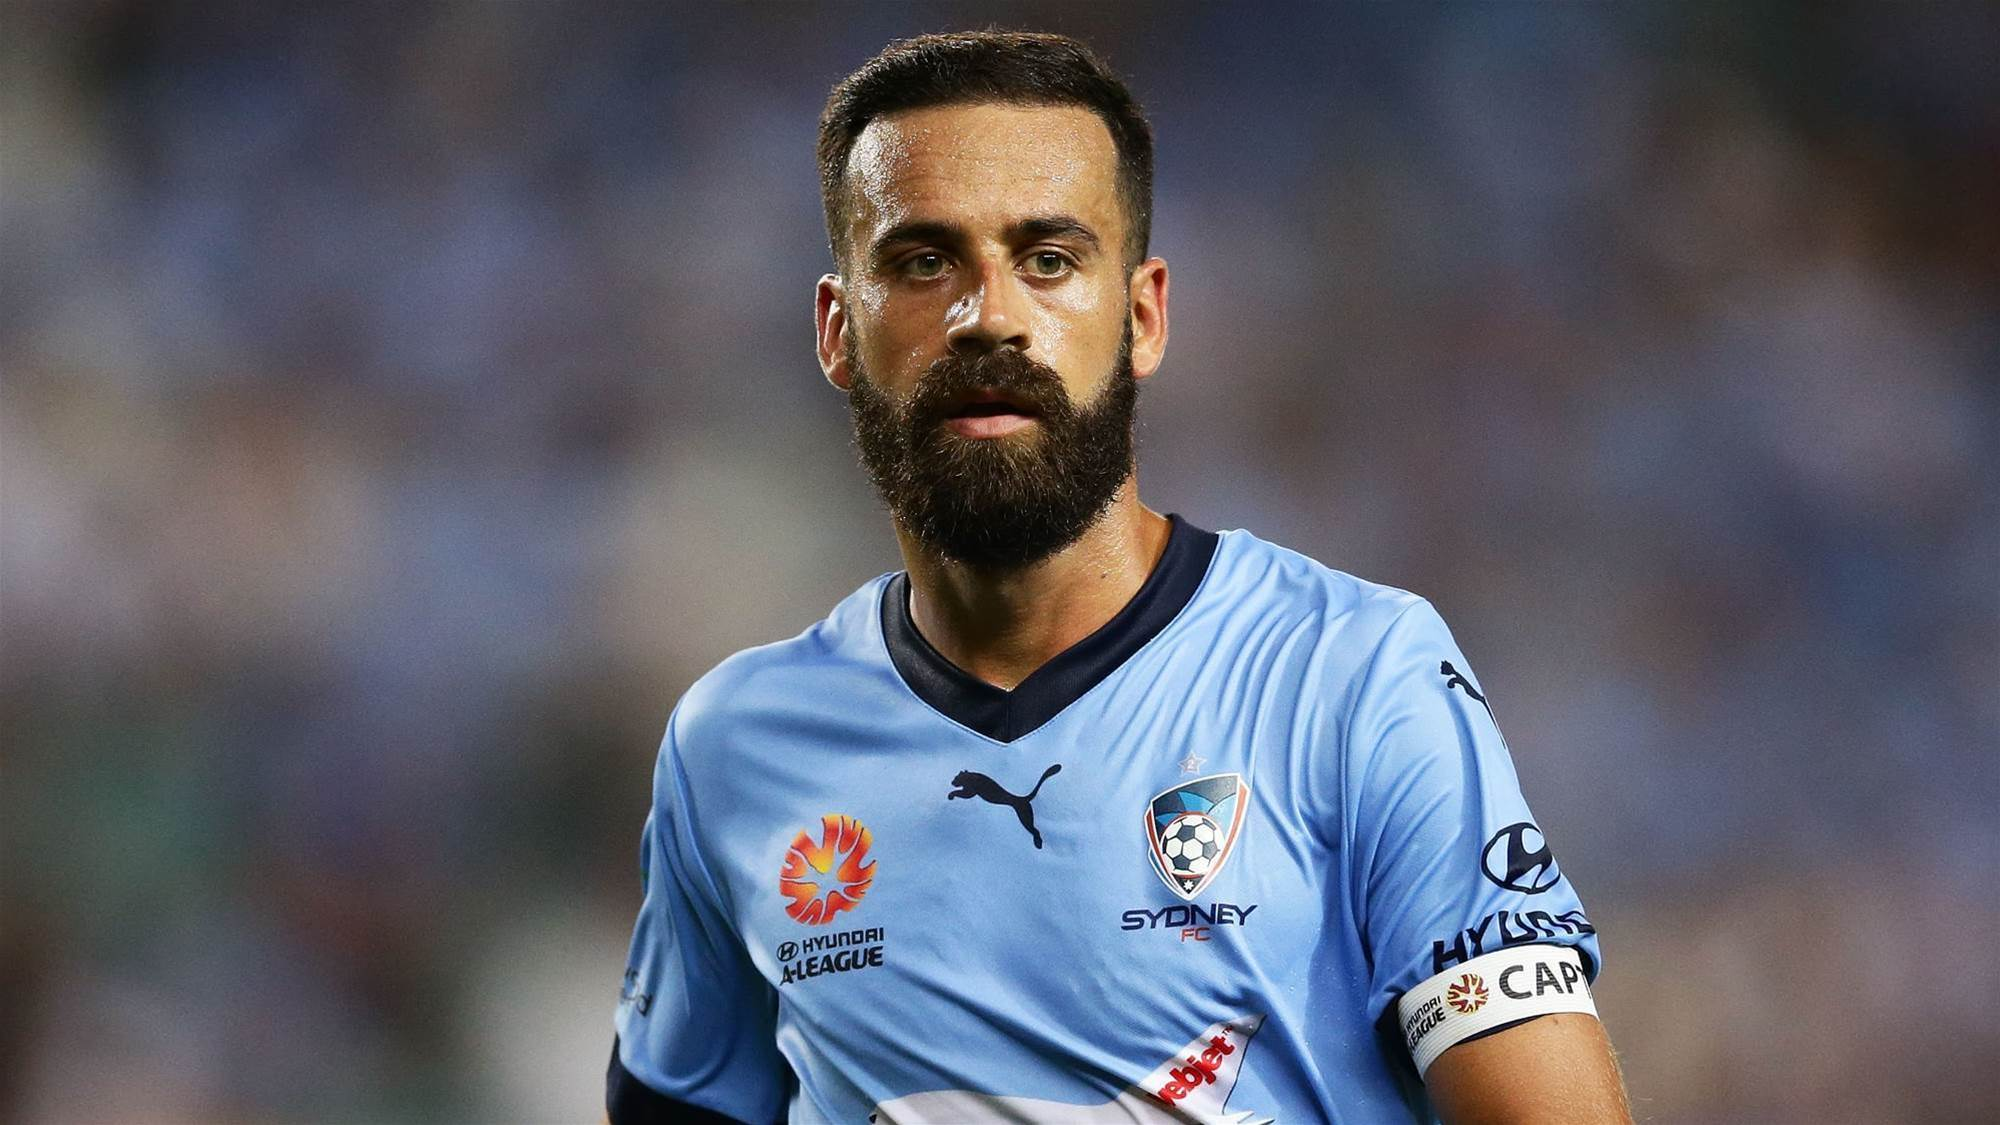 Brosque's derby revenge